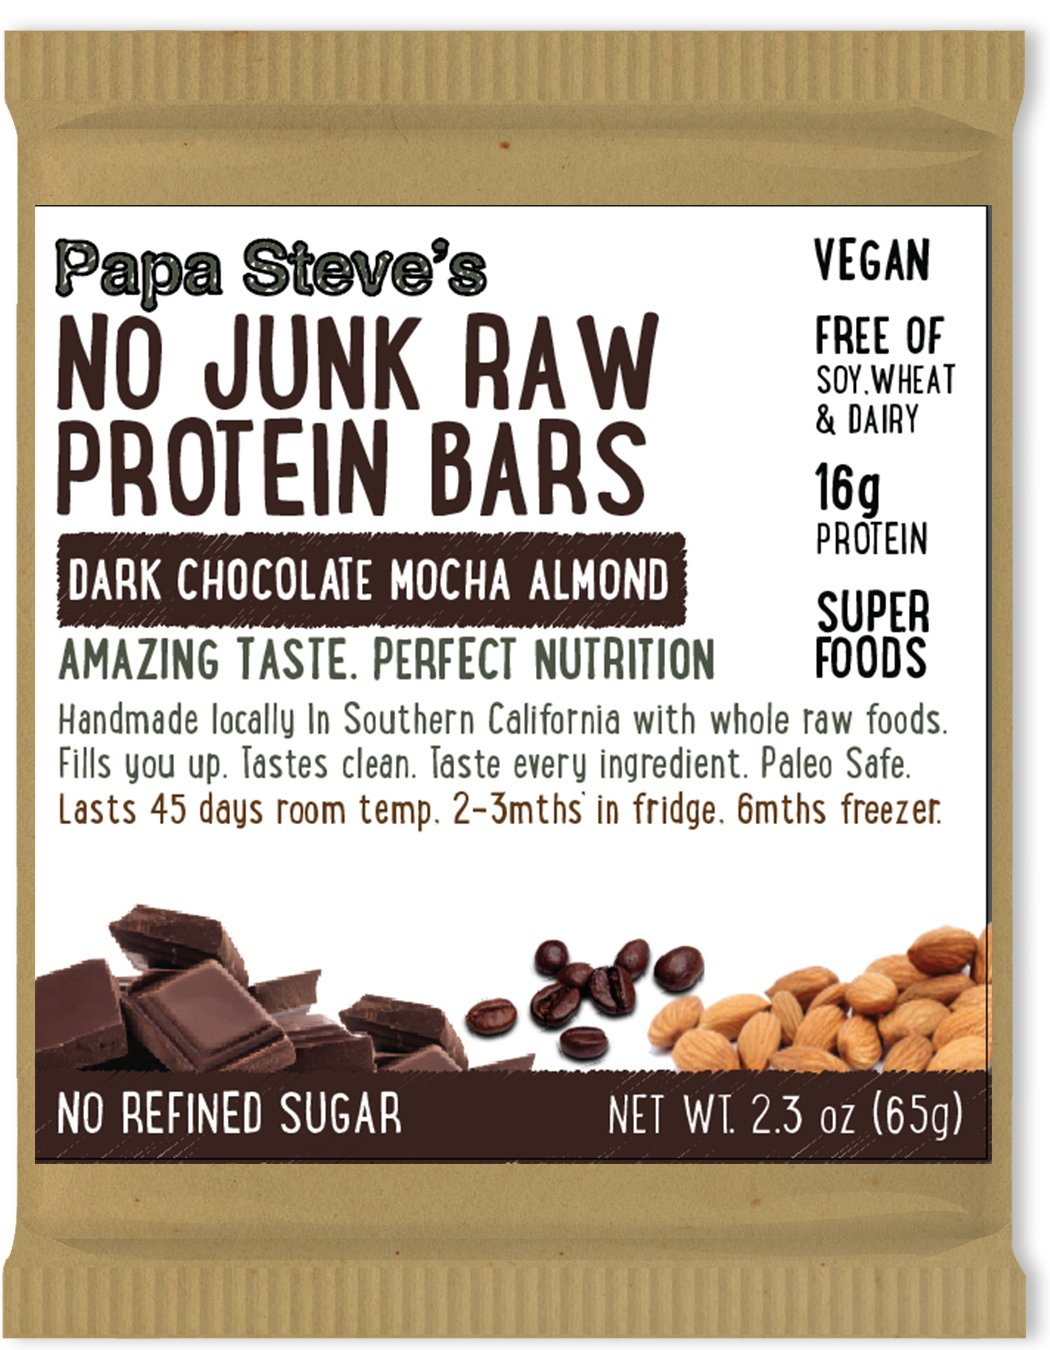 Papa Steve s No Junk Raw Protein Bars, Dark Chocolate Mocha Almond, 2.3 Oz, 10 Count